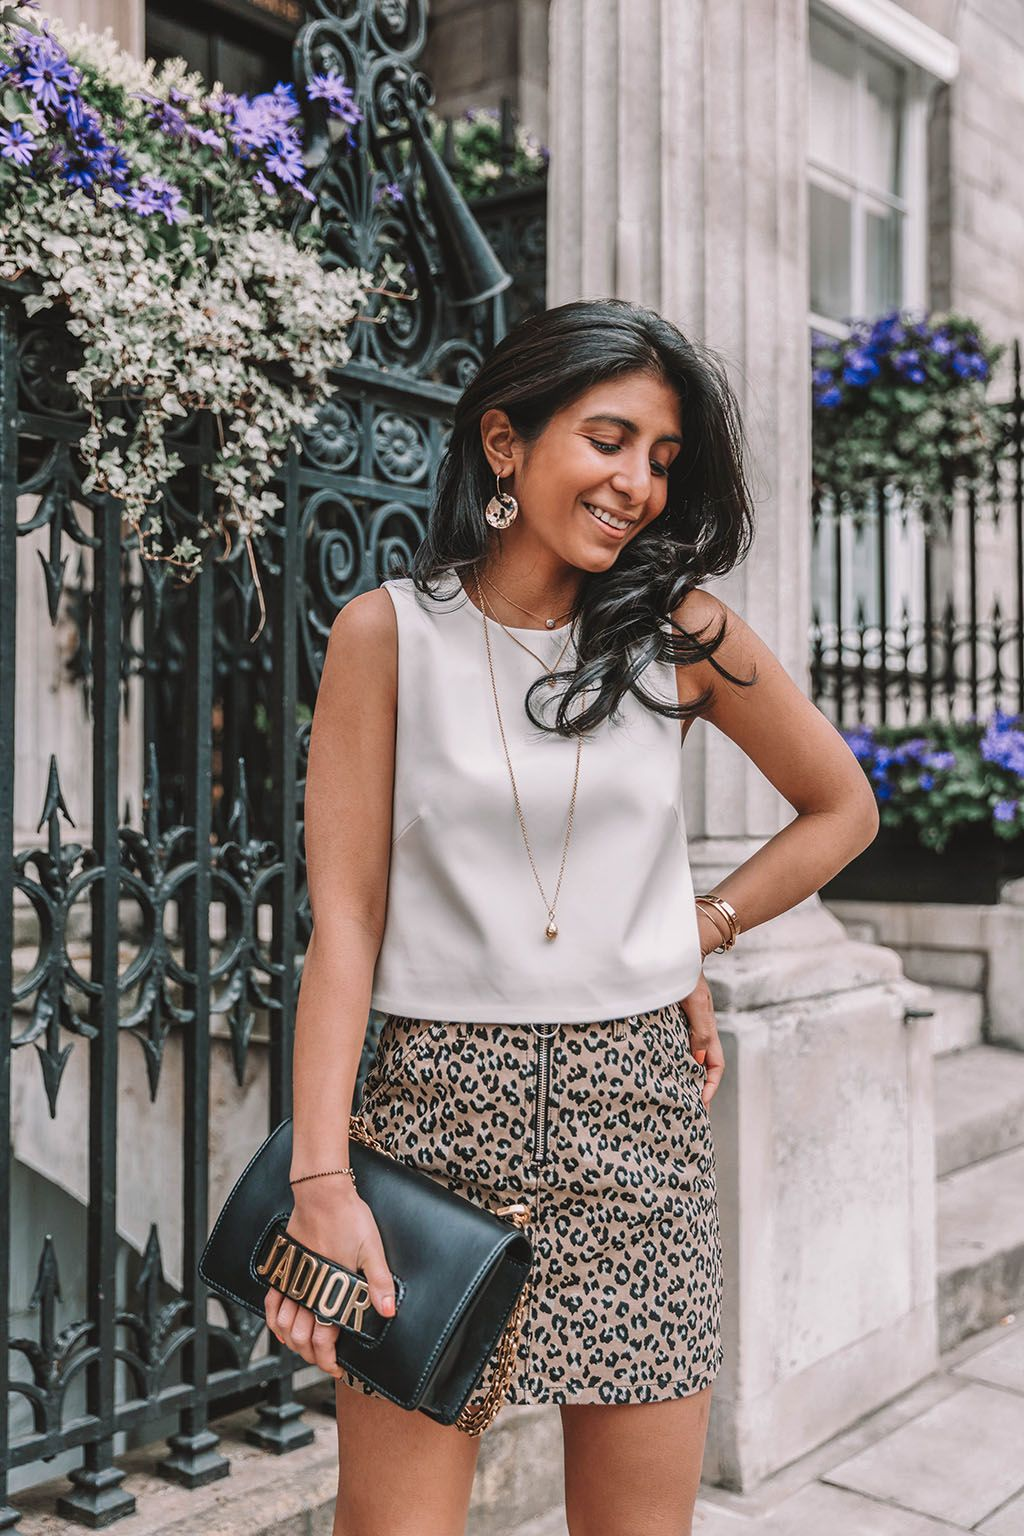 38f65d2db72ec5 Fashion blogger Shloka Narang of The Silk Sneaker shares why you need a leopard  print mini skirt in your wardrobe to create the perfect summer outfit ...